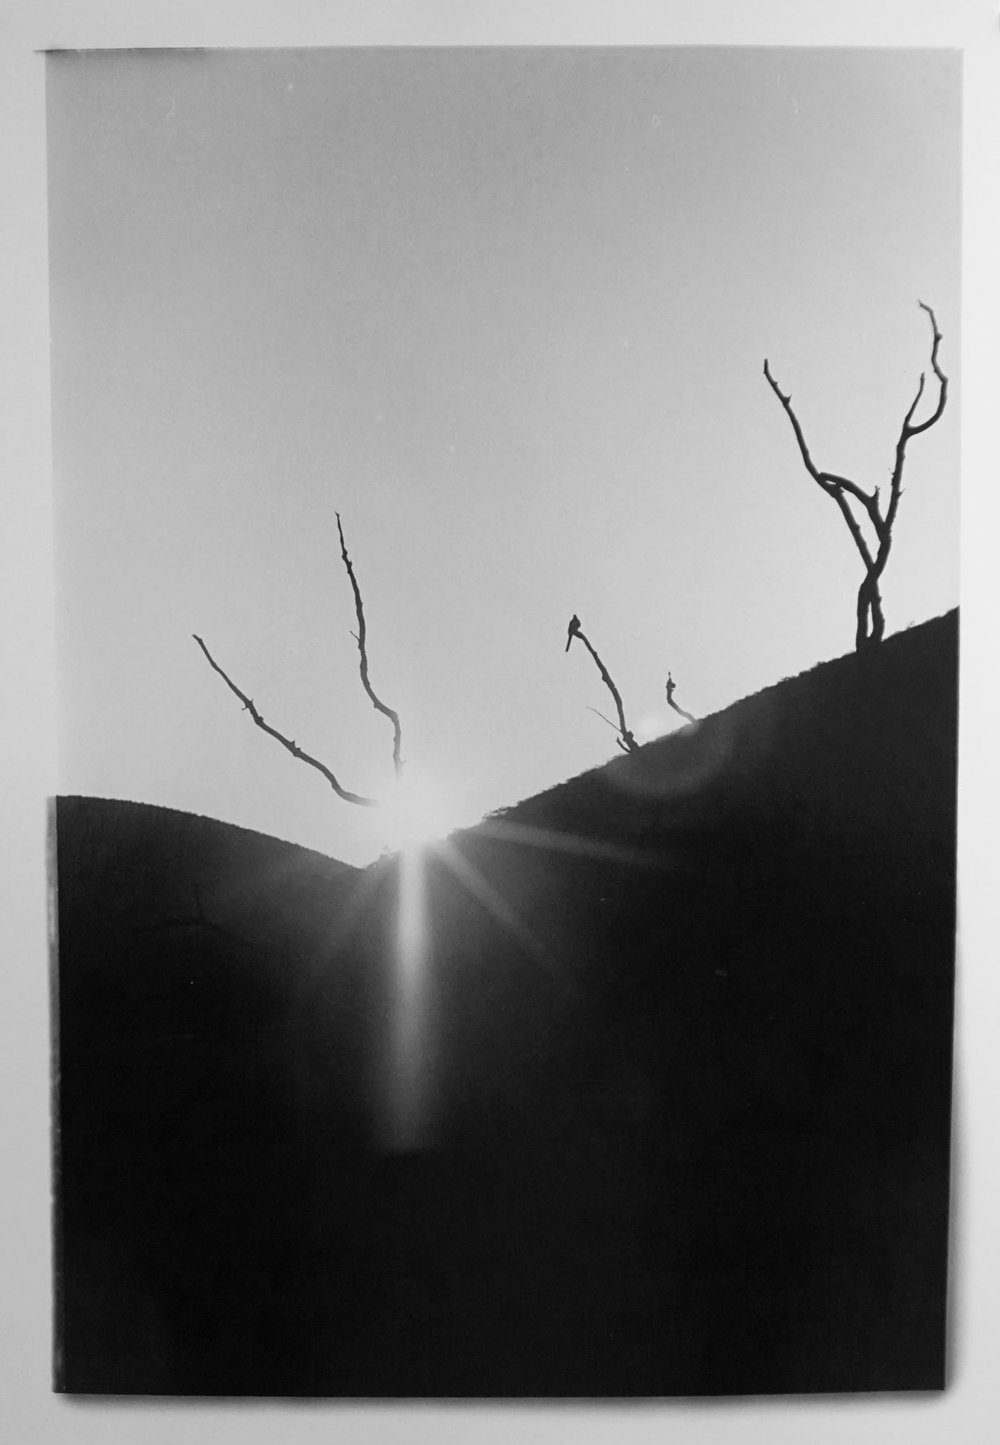 54. Richard Woldendorp, 'Sunrise, Hamersley Range WA', BW55, taken in 1968, printed in 2012